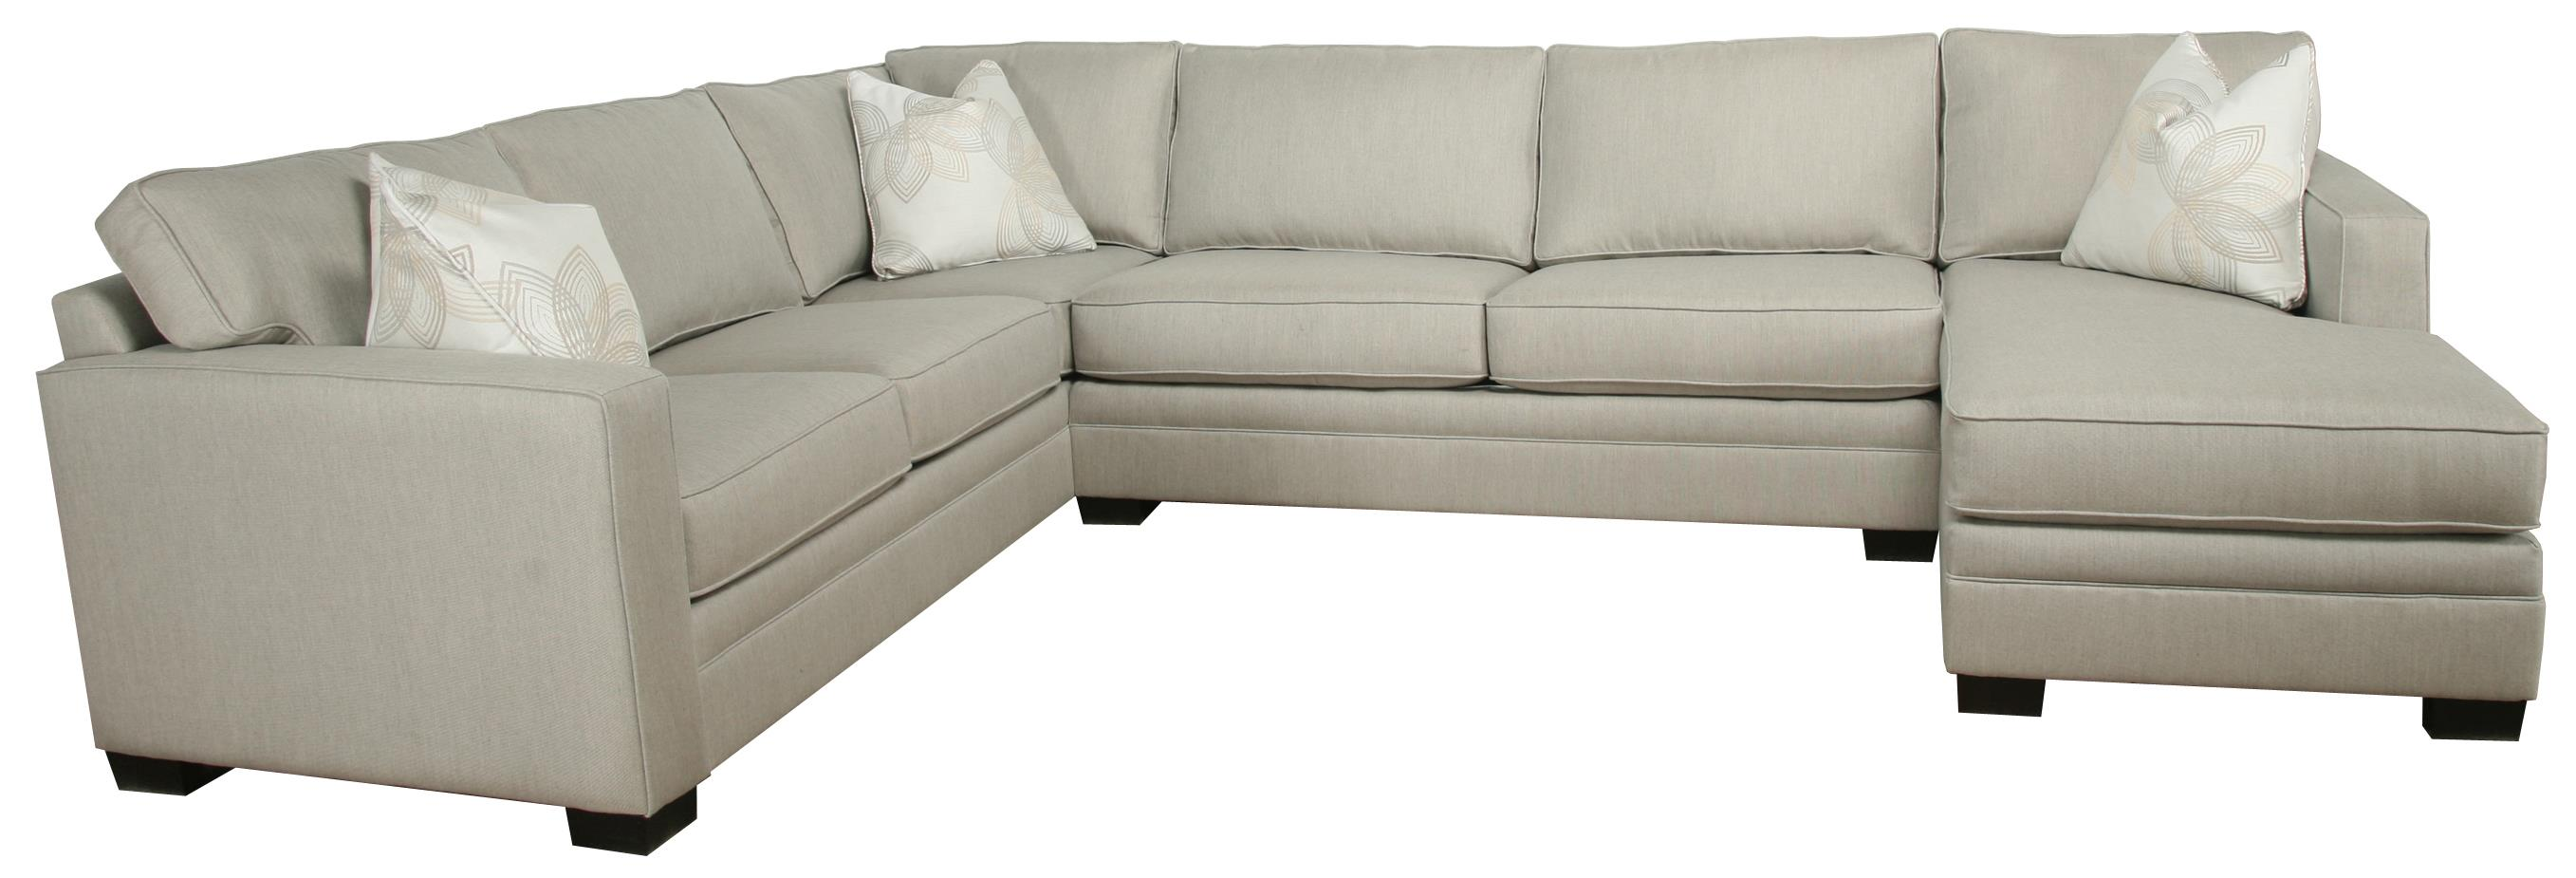 Contemporary 3 piece sectional with chaise by bauhaus for 3 piece sectional sofa with chaise